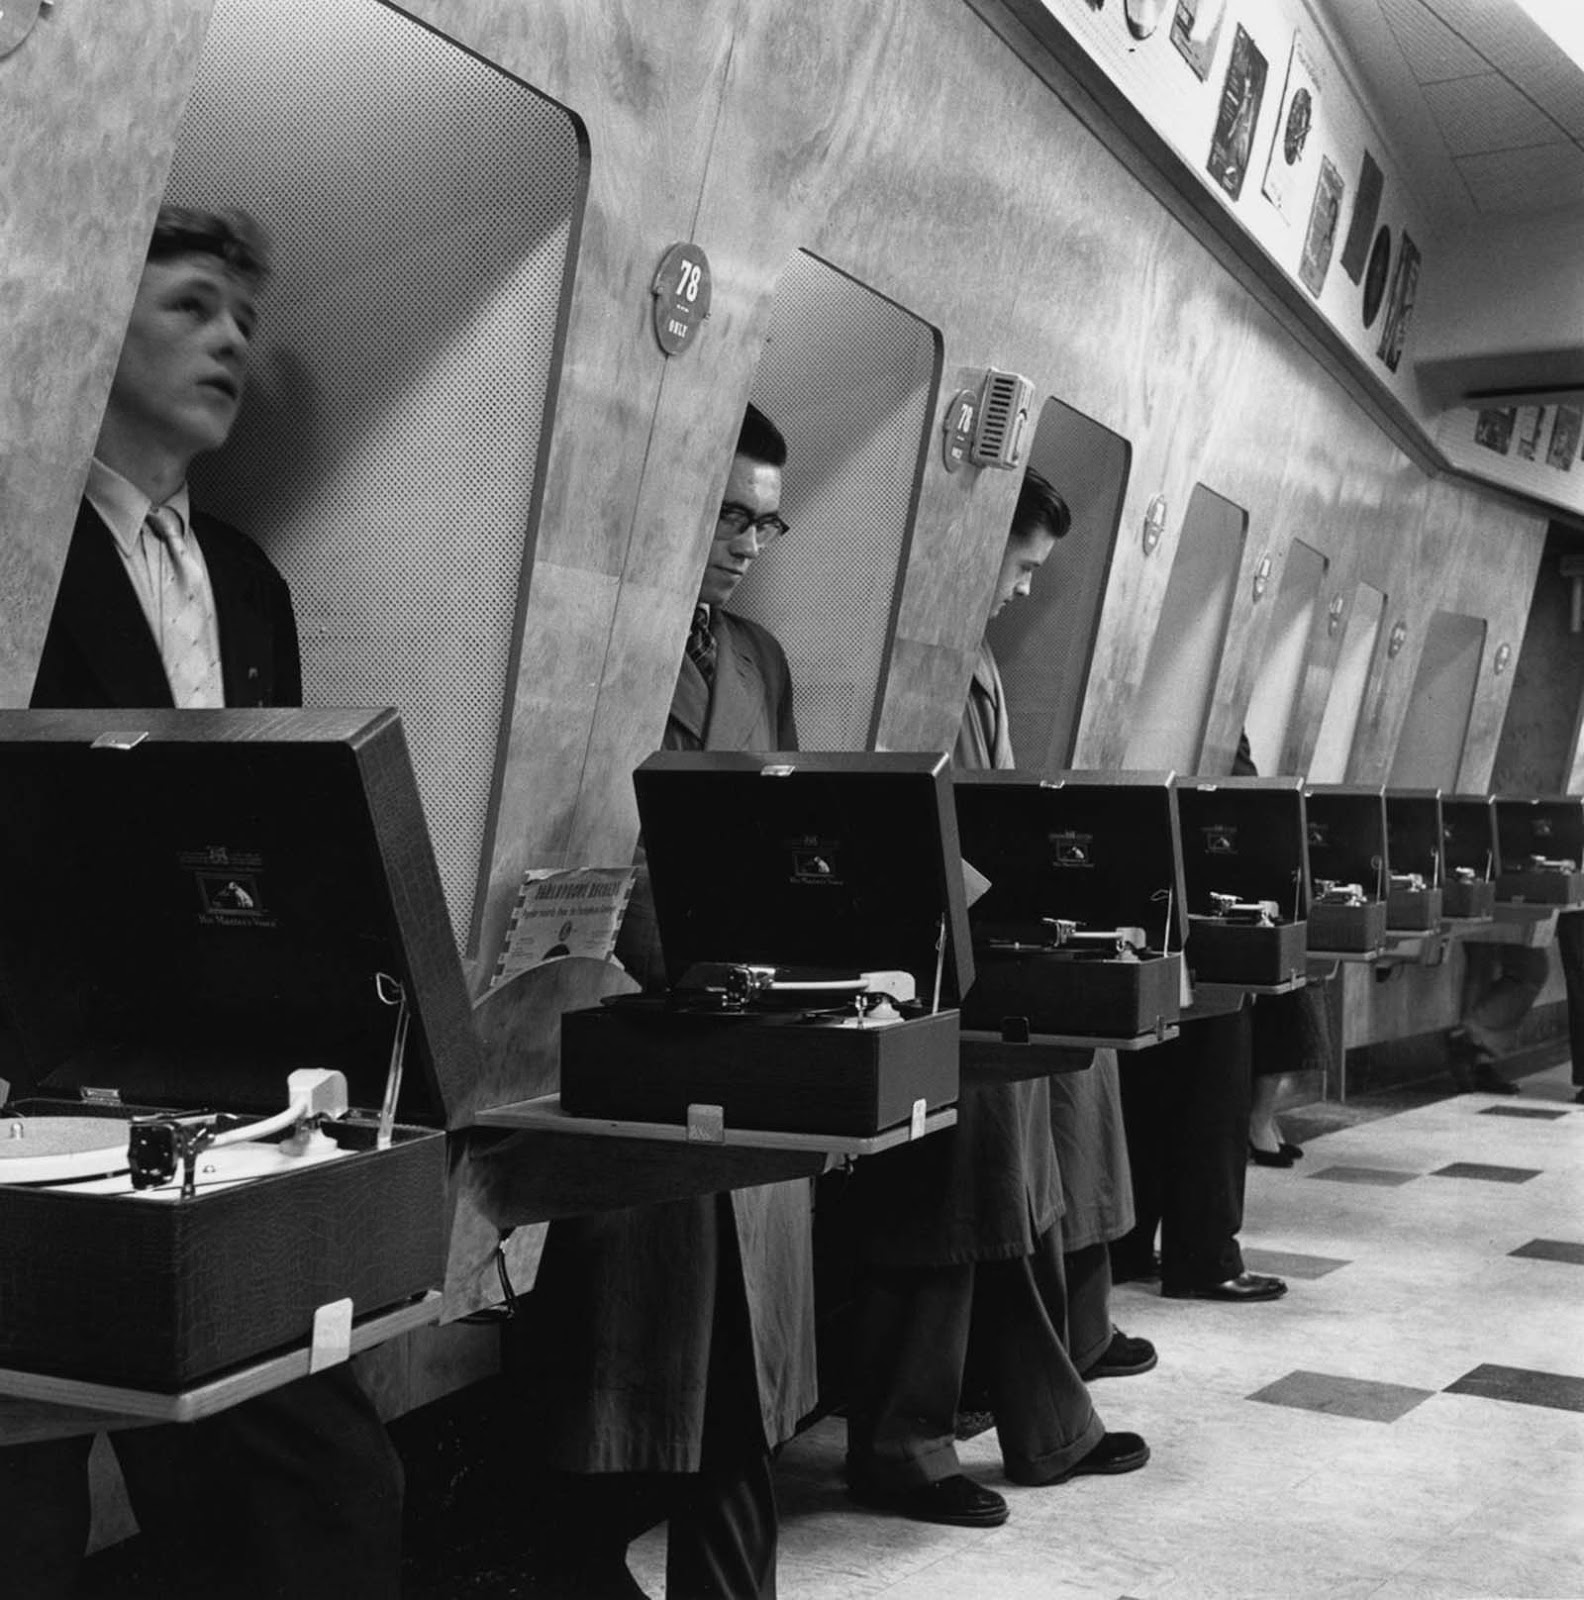 Young men listening to songs in a special listening booth. 1954.